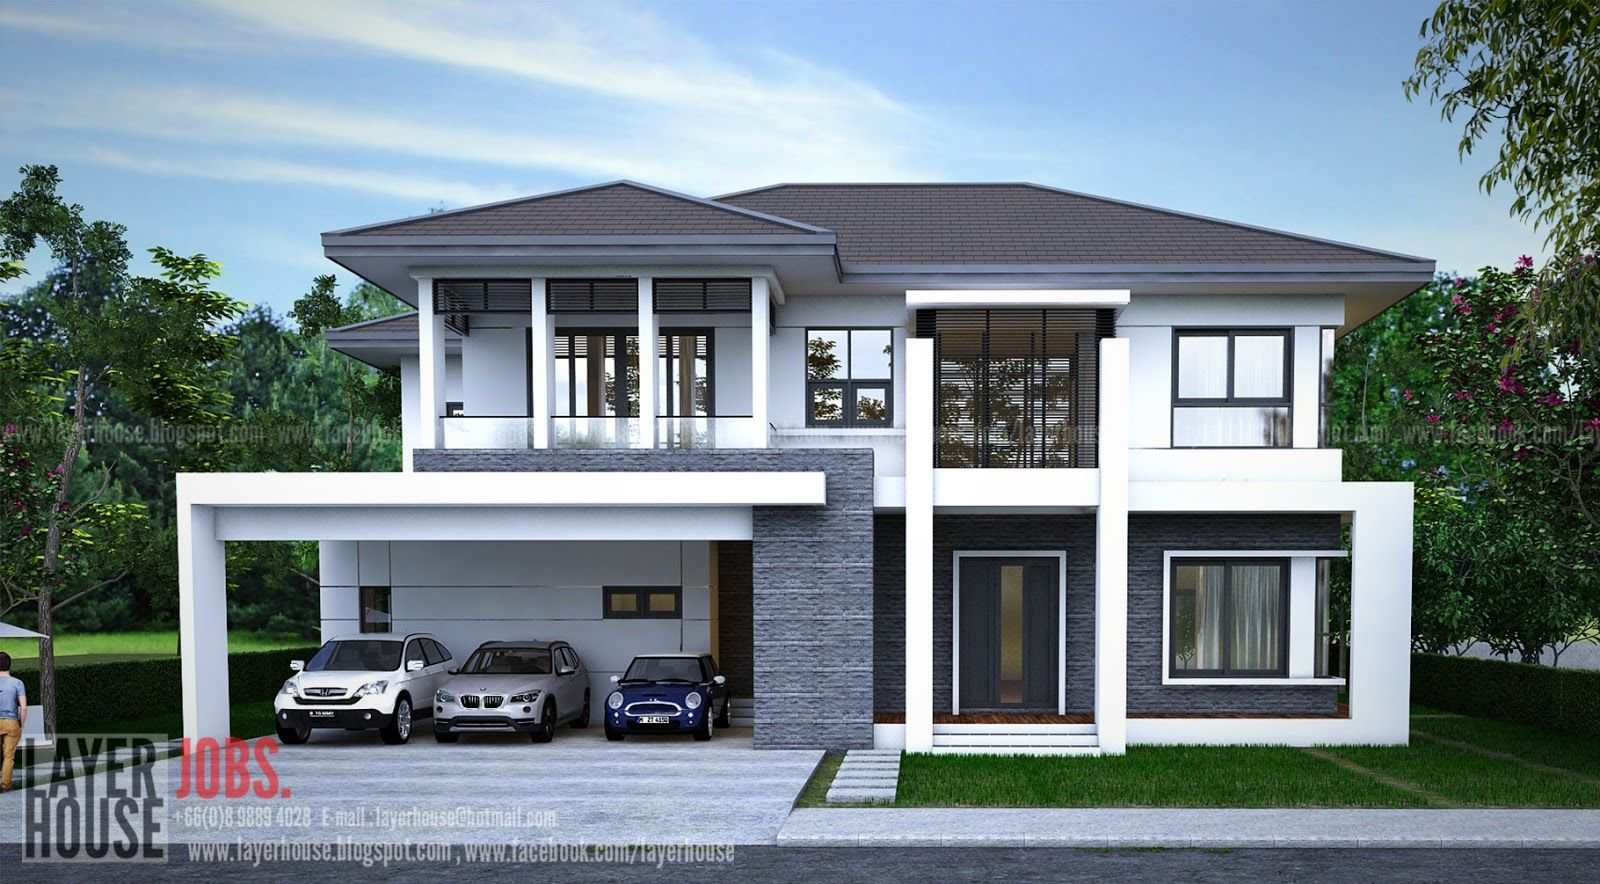 House Plans Idea 17x11 5m With 5 Bedrooms Sam House Plans In 2020 Two Storey House Plans House Plans Modern House Plans